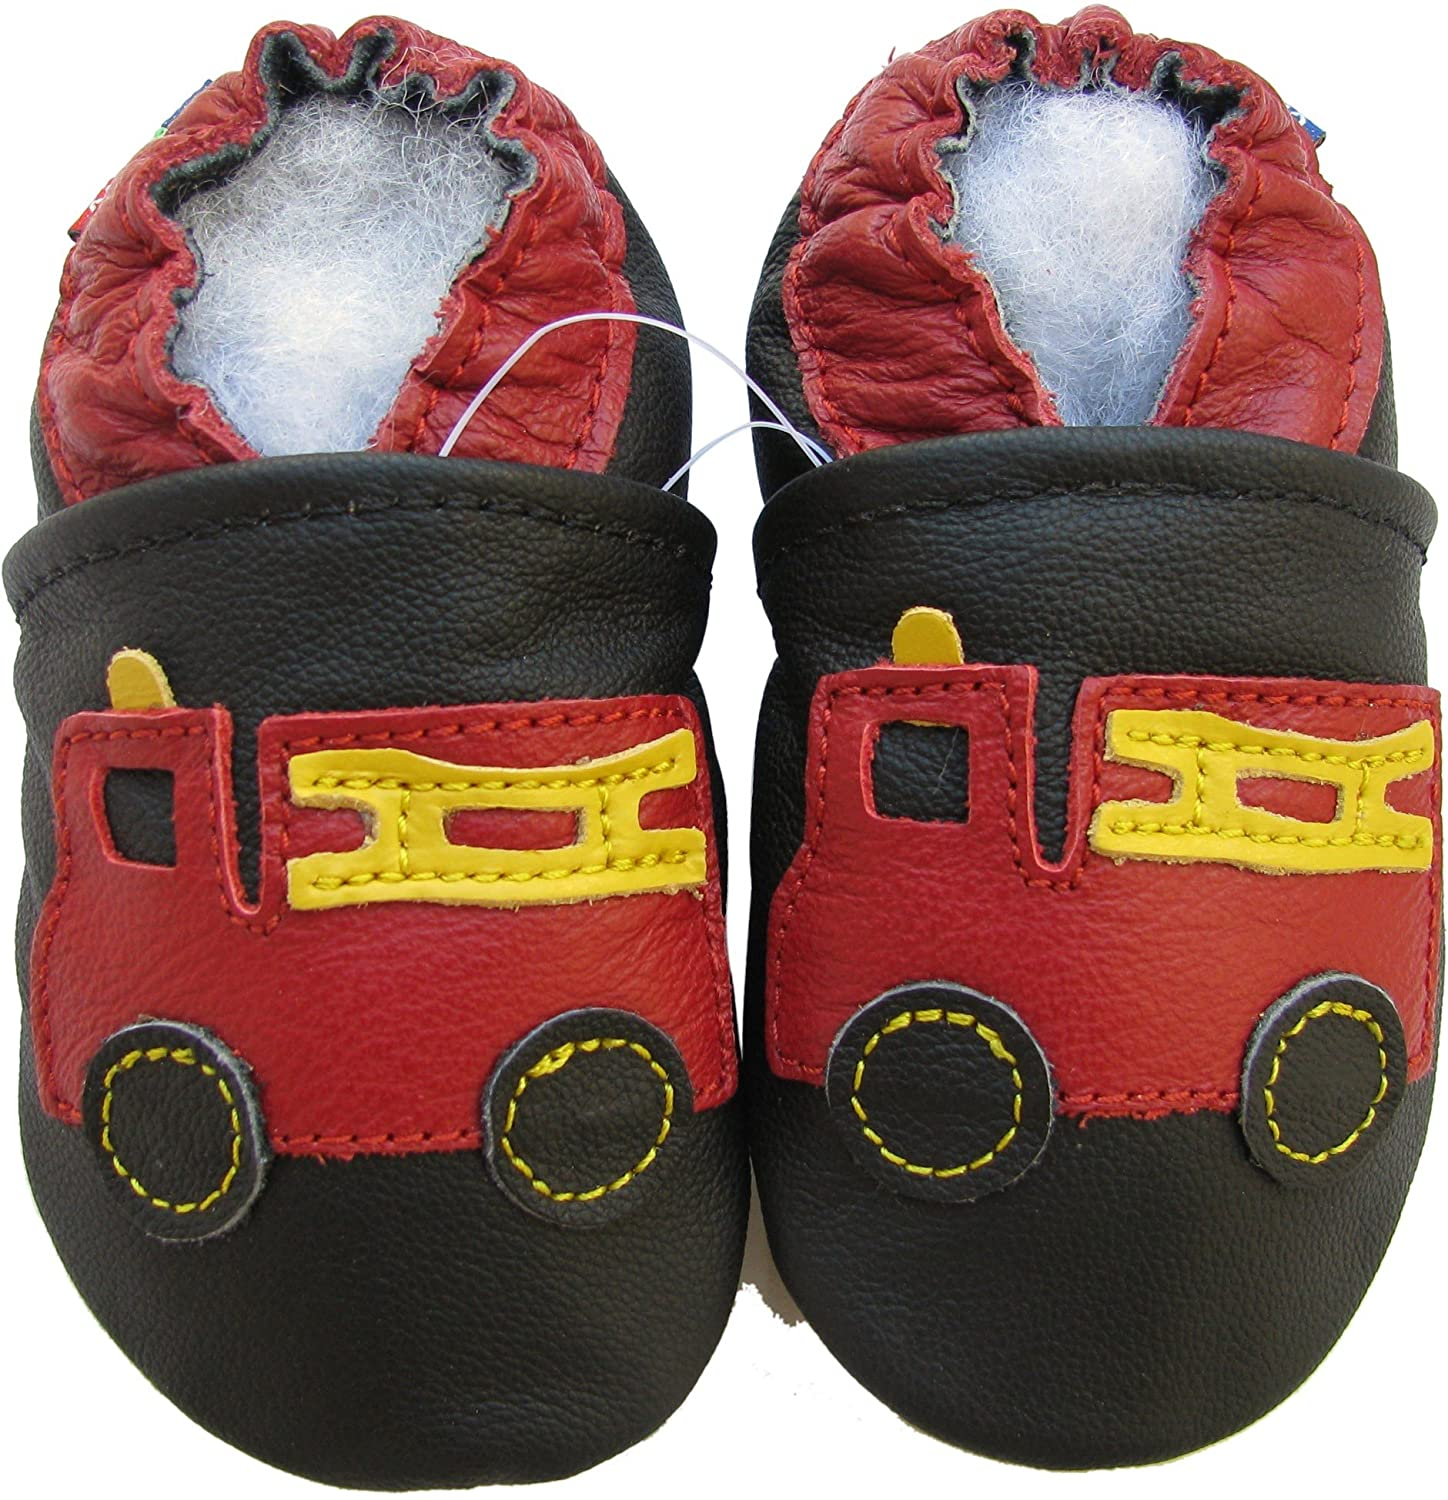 Carozoo 28 Designs Baby Boy Shoes Up to 5-6 Years Soft Sole Leather Kids Shoes